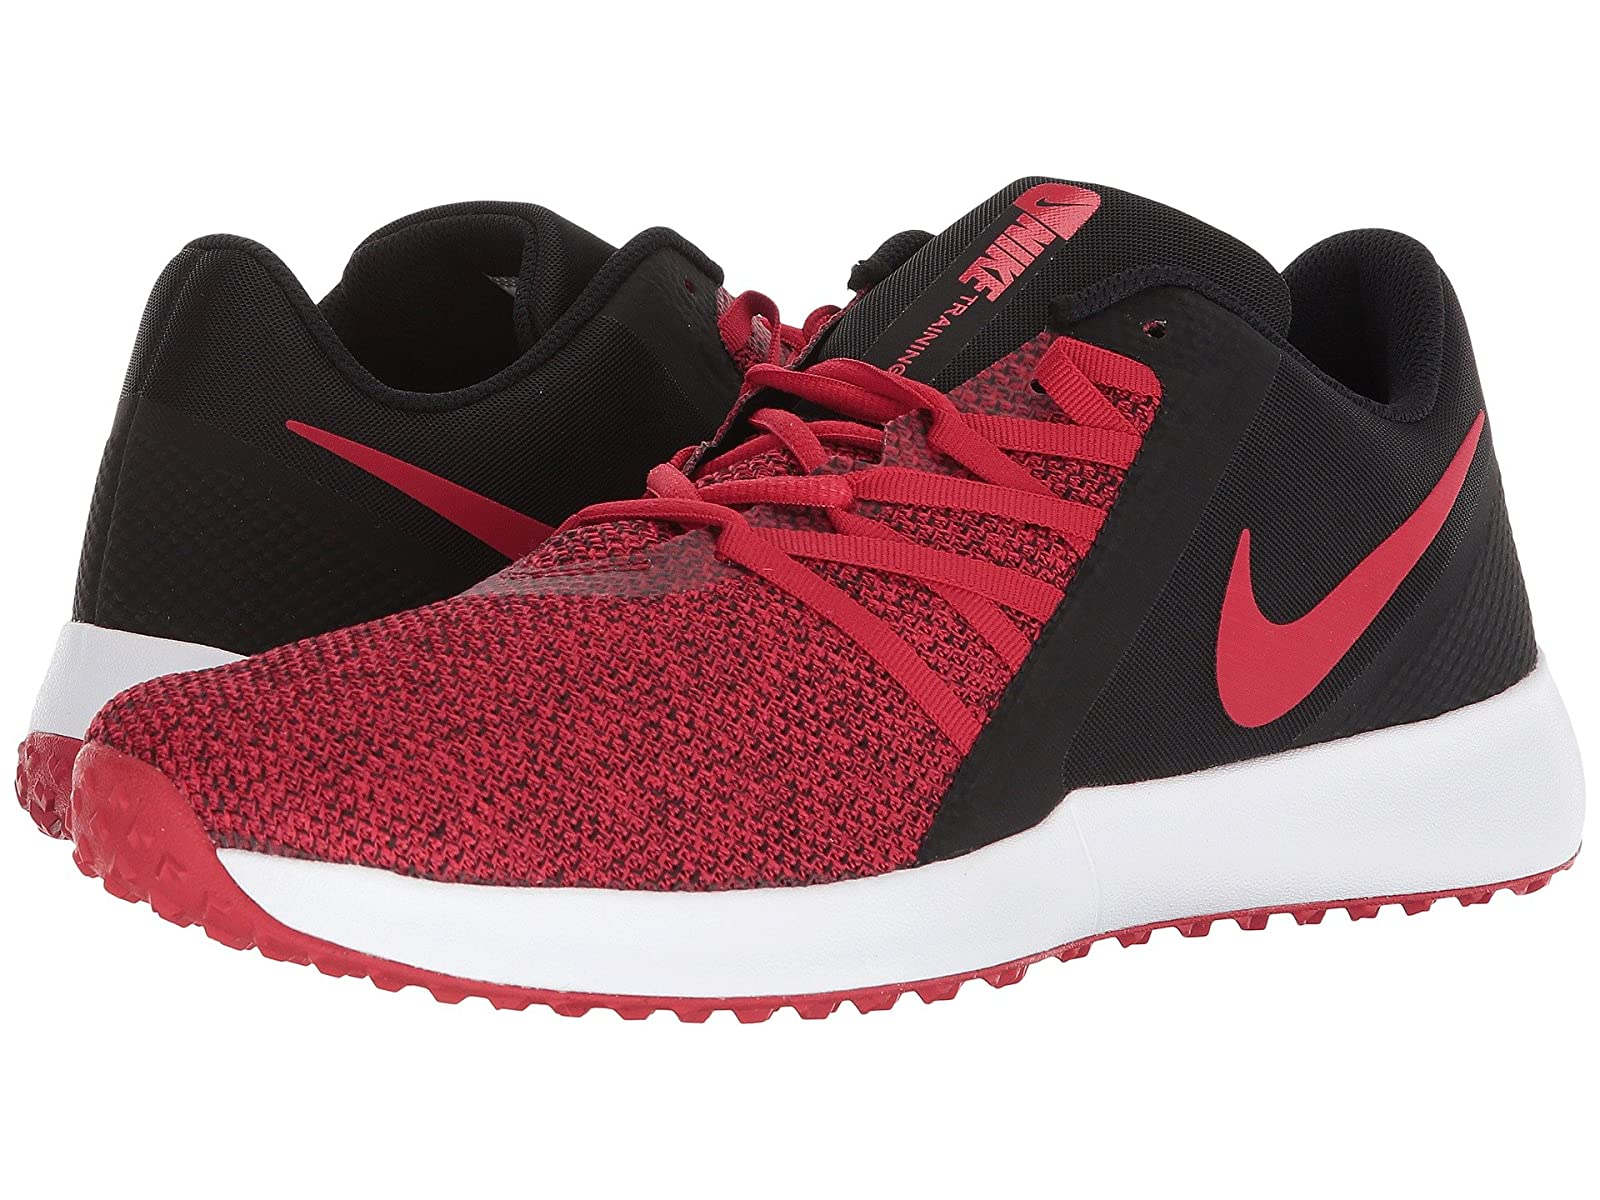 Nike Varsity Compete Trainer 4Atmospheric grades have affordable shoes